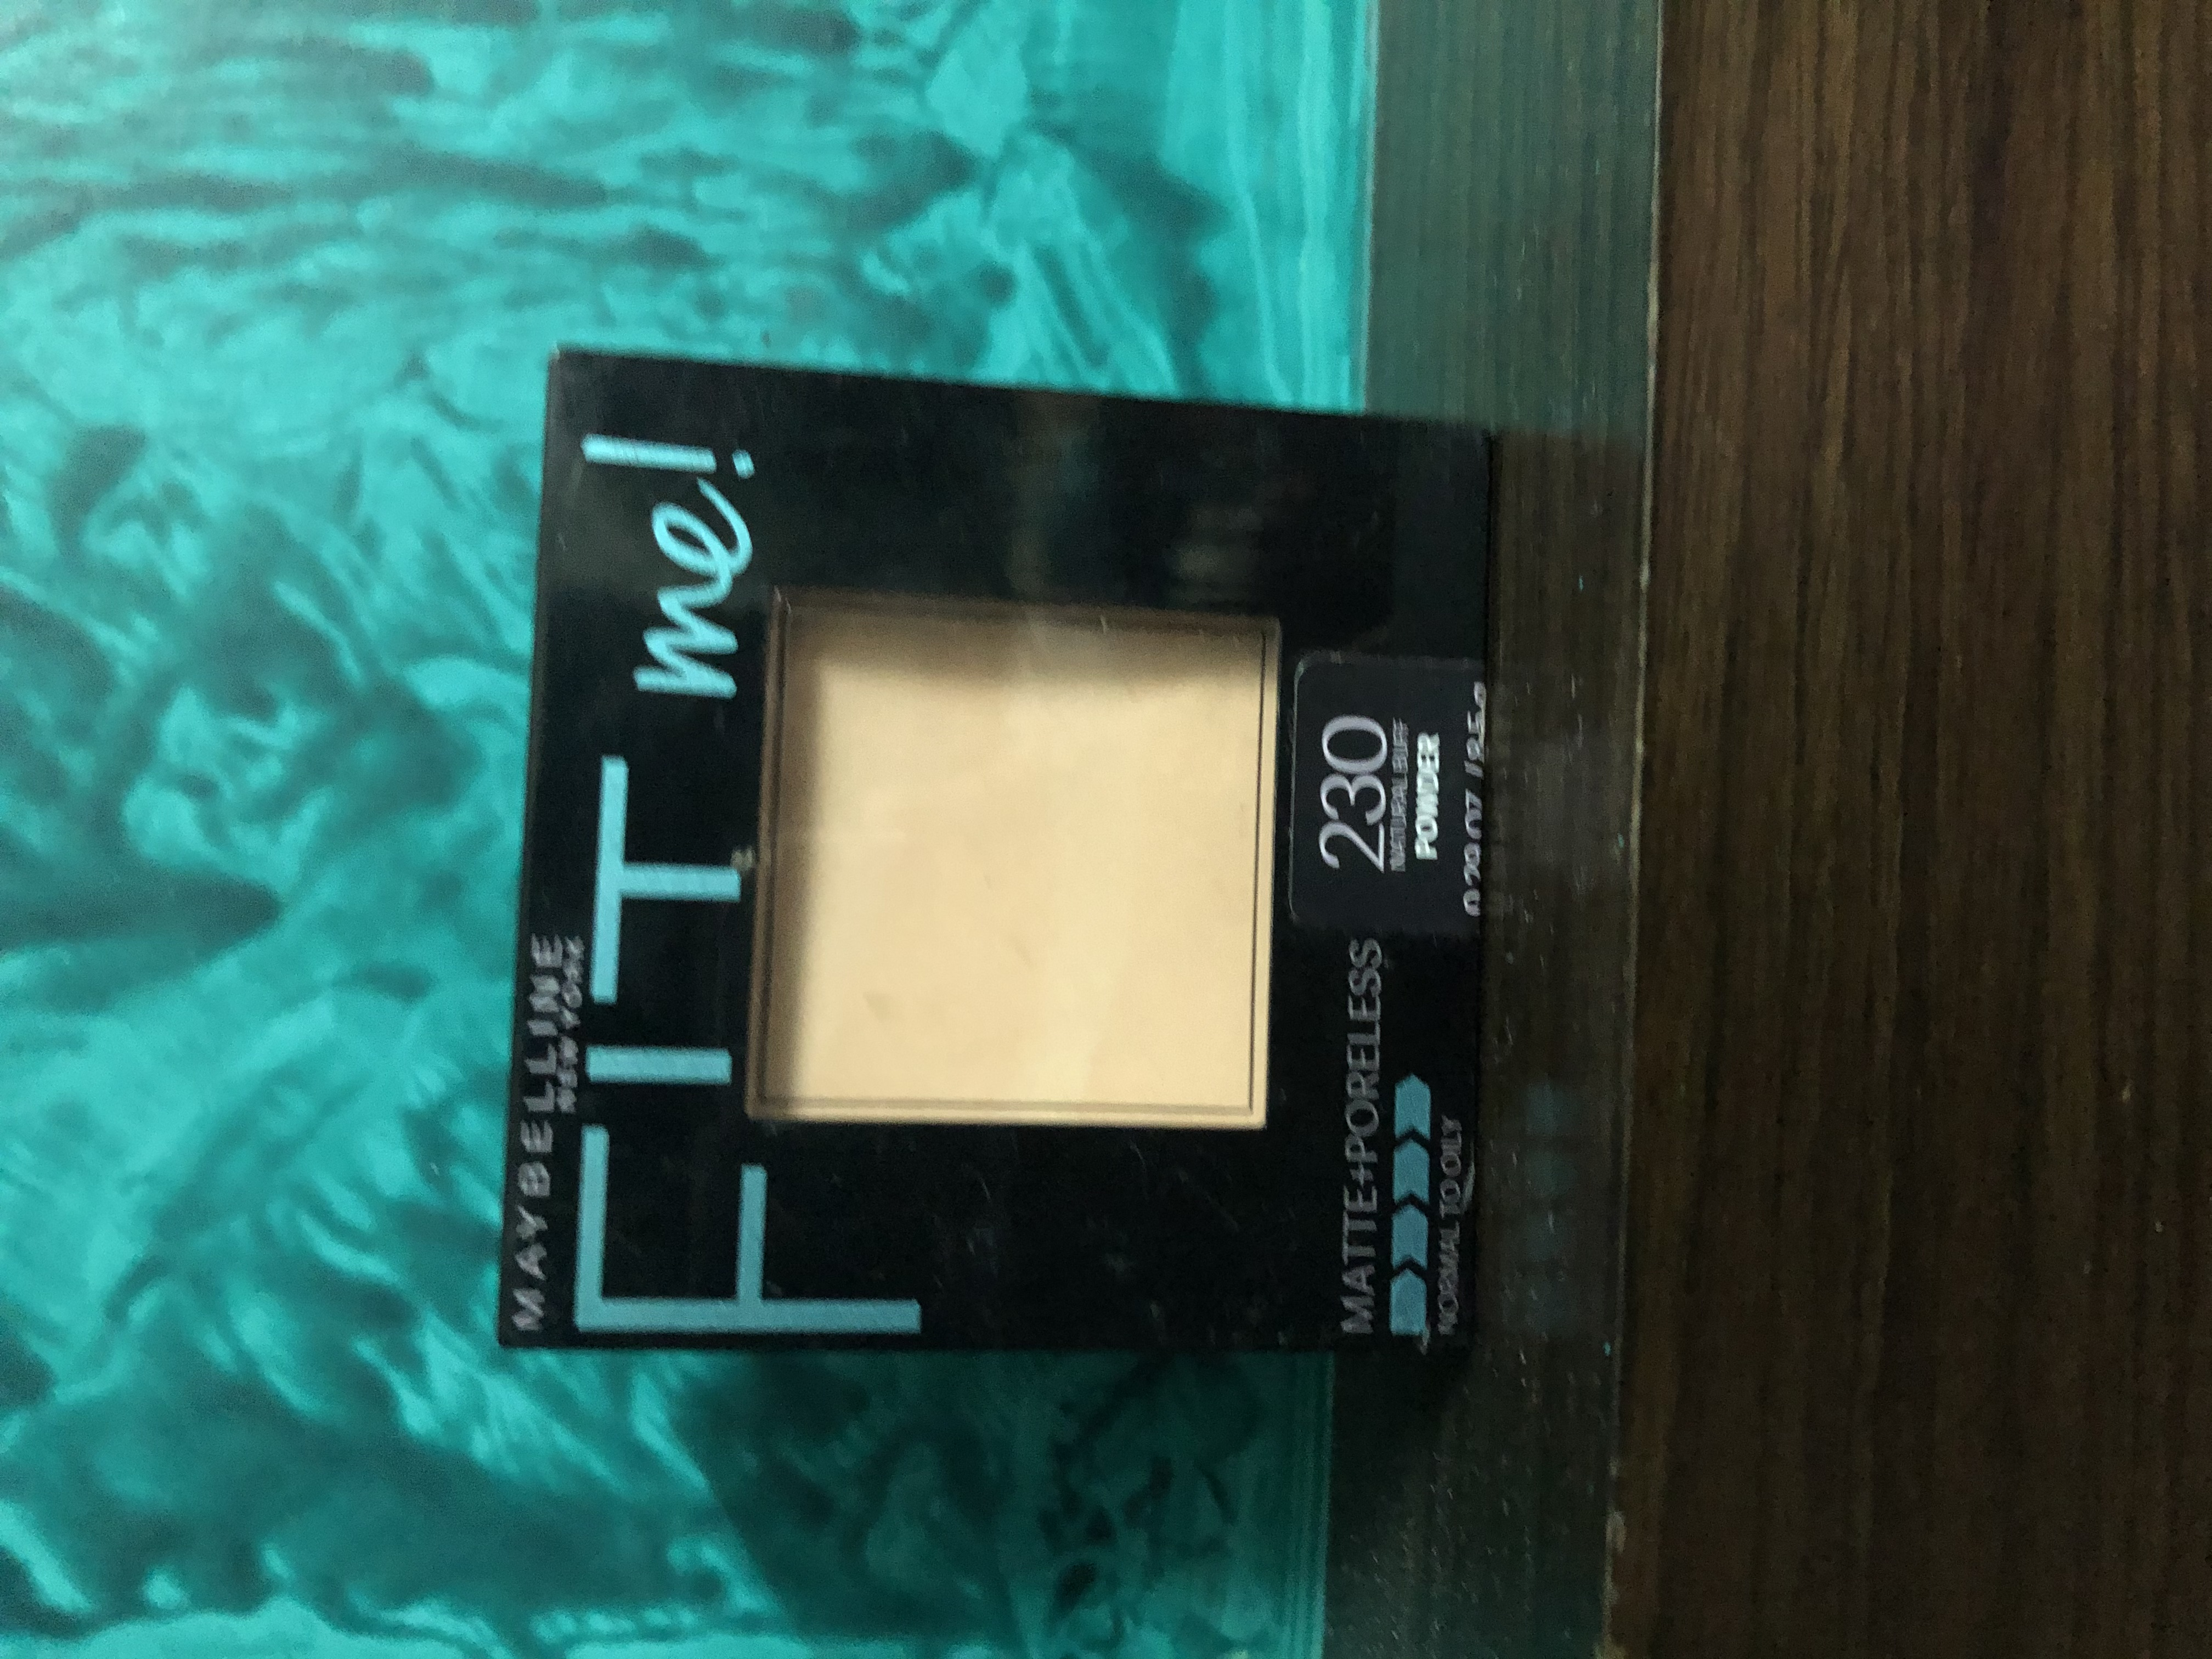 Maybelline Fit Me Matte And Poreless Powder-Best compressed compact from maybelline fit me range..-By divyakiran-1